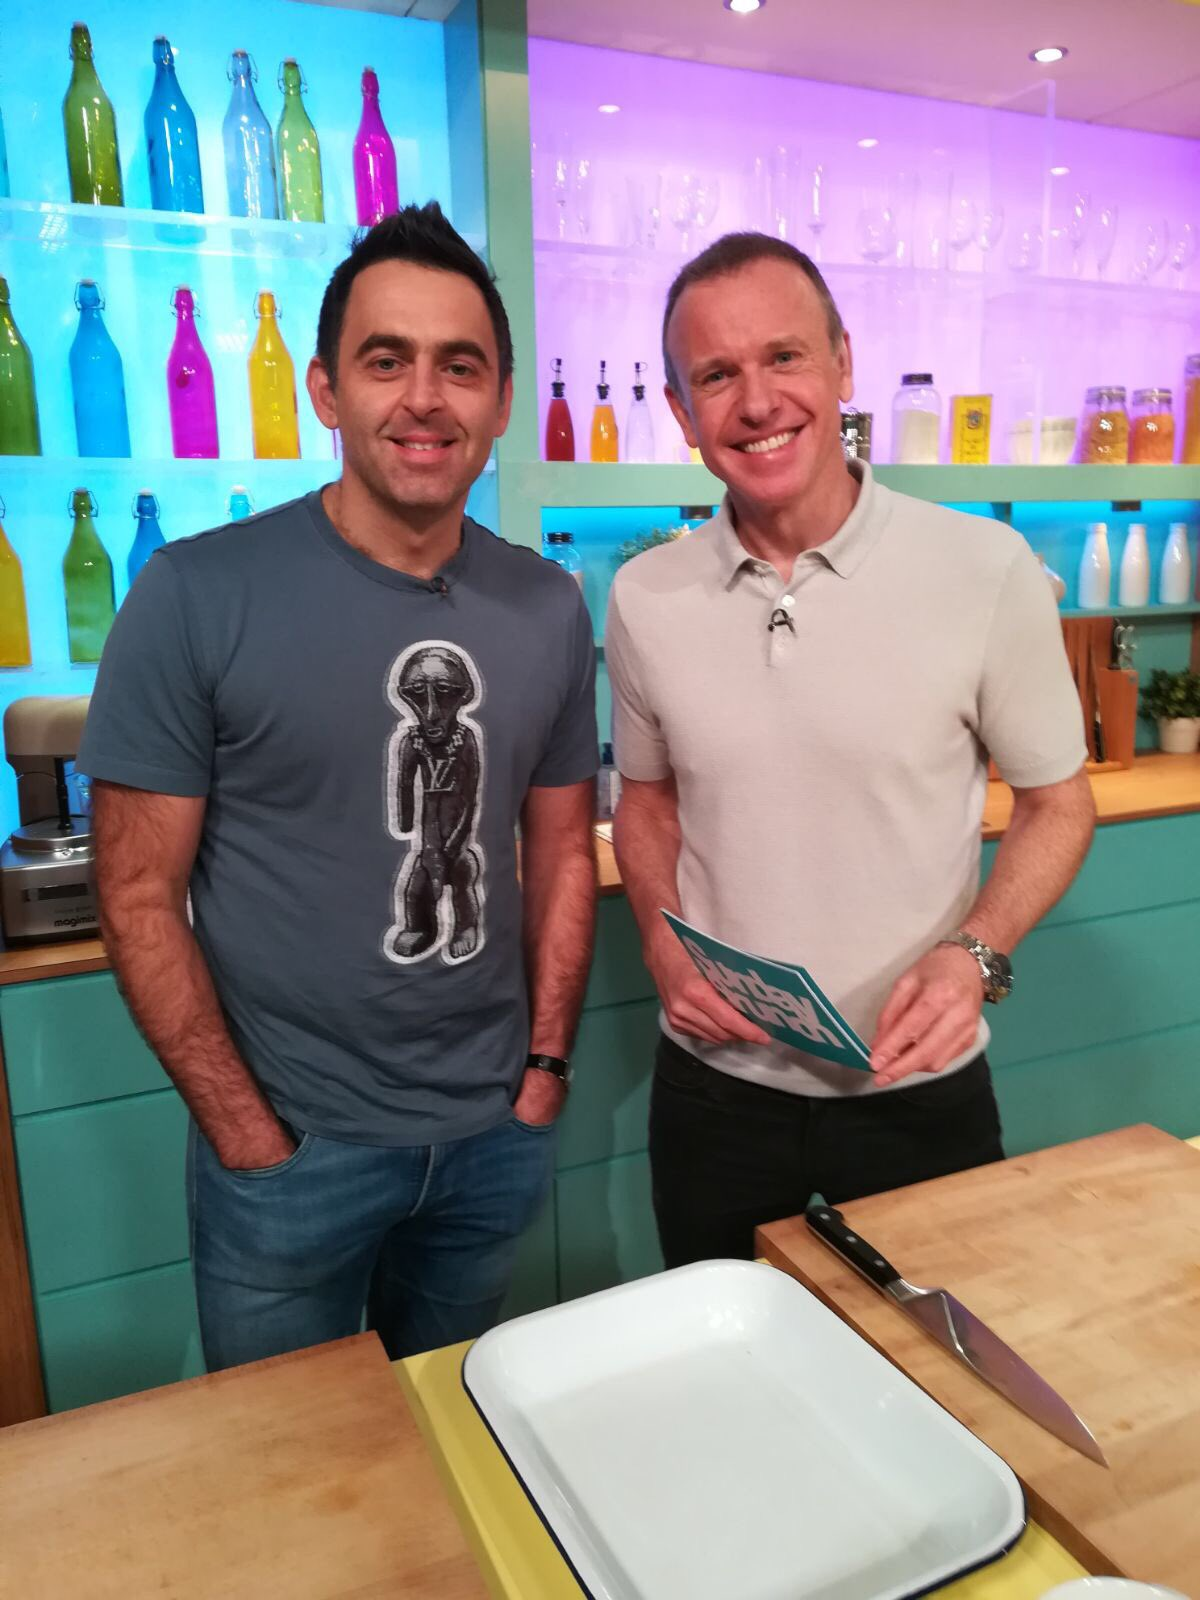 RT @ronnieo147: Great time today, thanks for having me @SundayBrunchC4 https://t.co/mYP27OmrxL